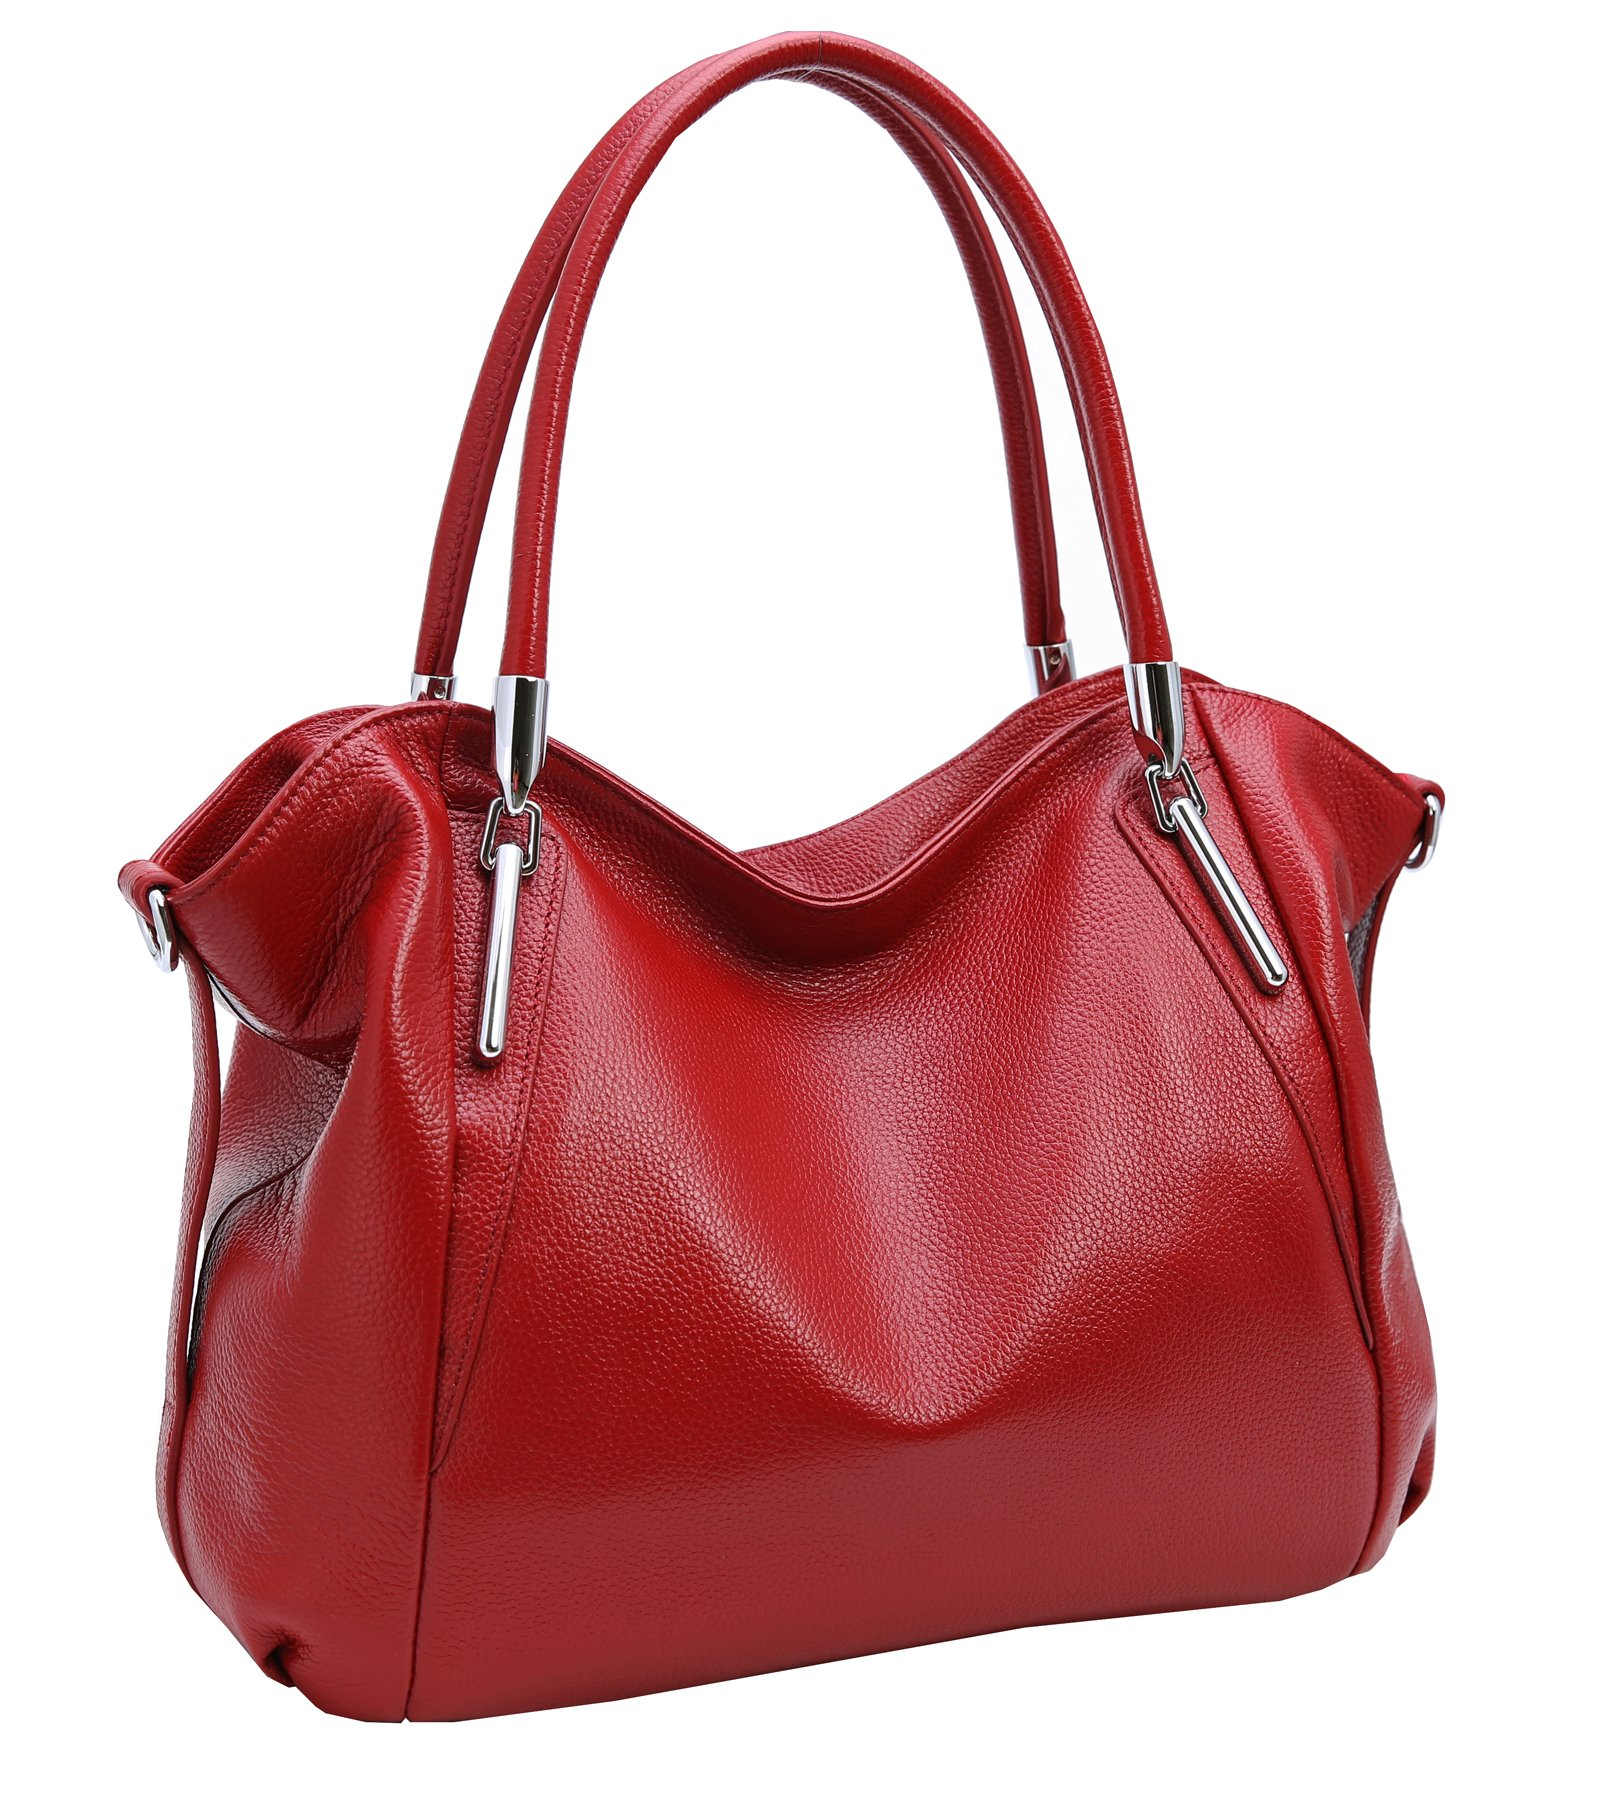 Heshe Womens Leather Handbags Tote Bag Top Handle Bag Hobo Shoulder Handbag Designer Ladies Purse Cross Body Bag (Wine)